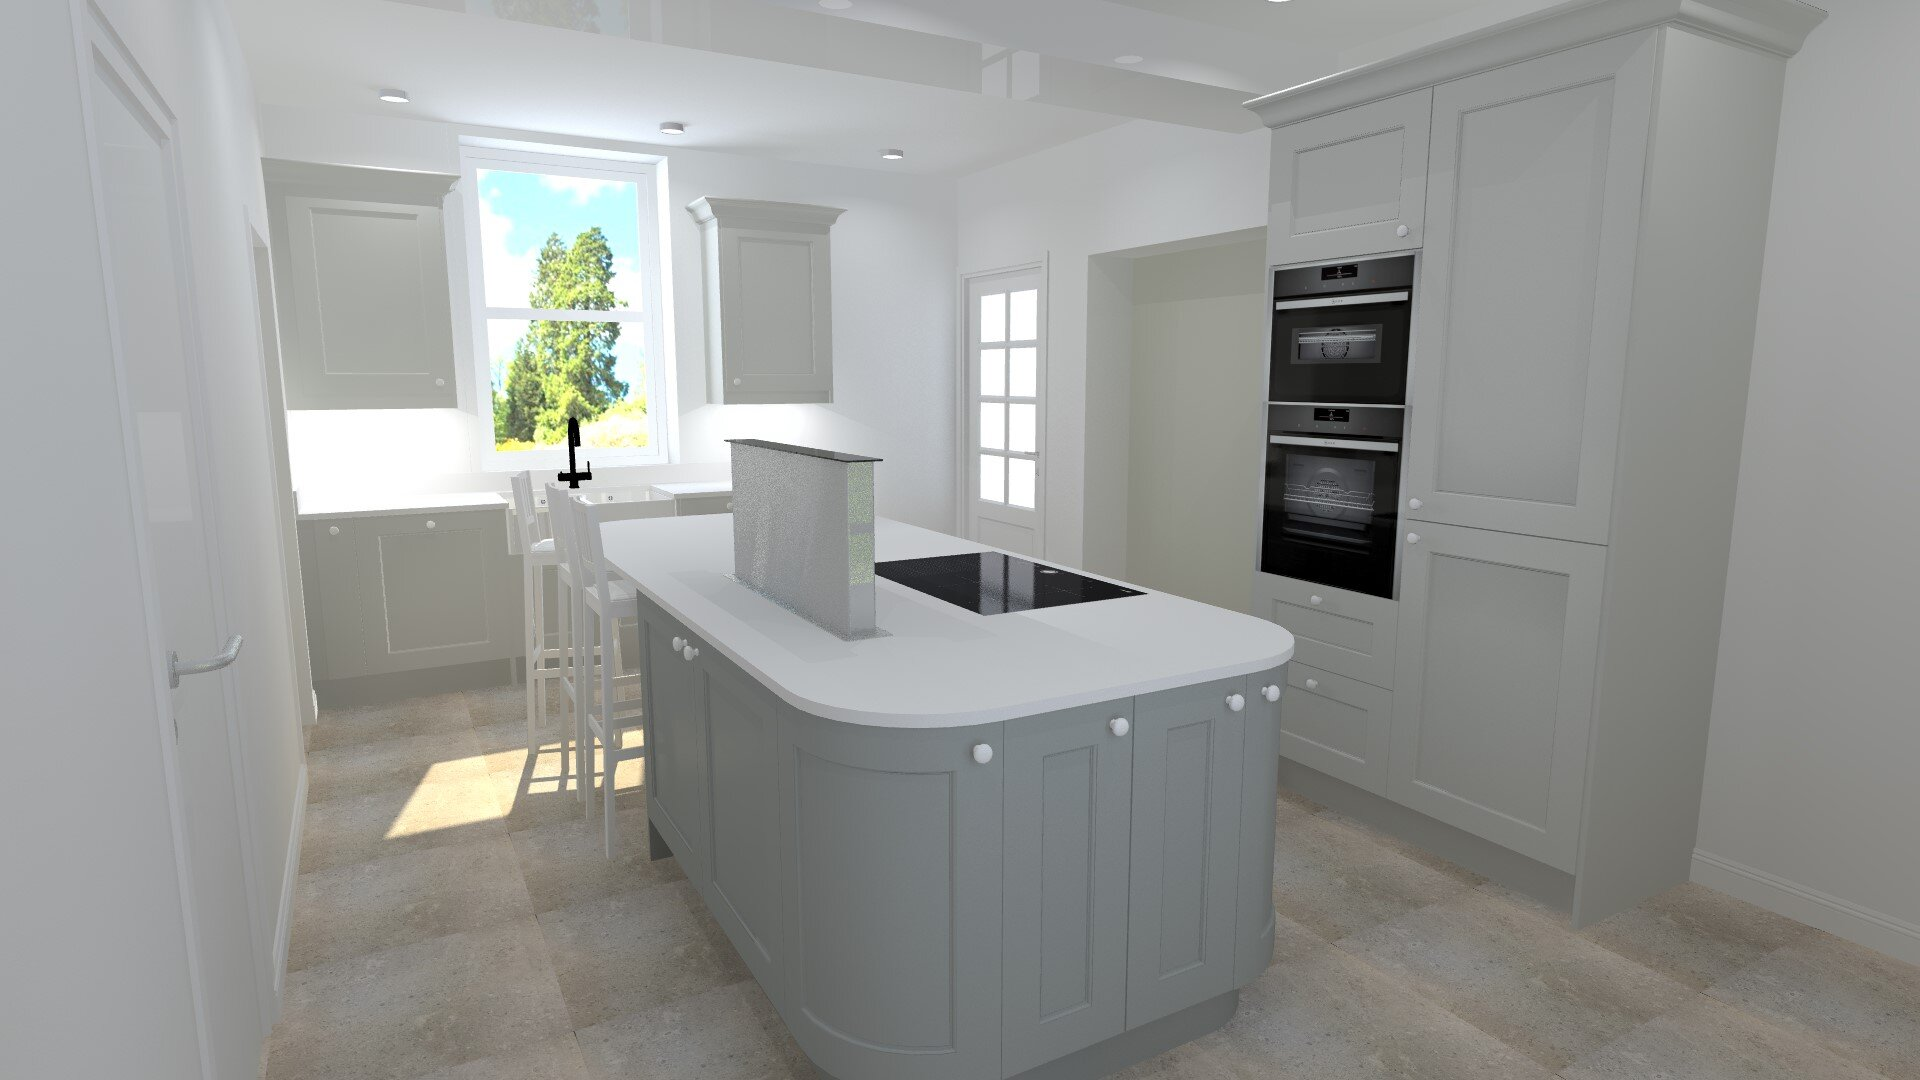 Mr and Mrs Reed Revised Kitchen Perspective 1.jpg